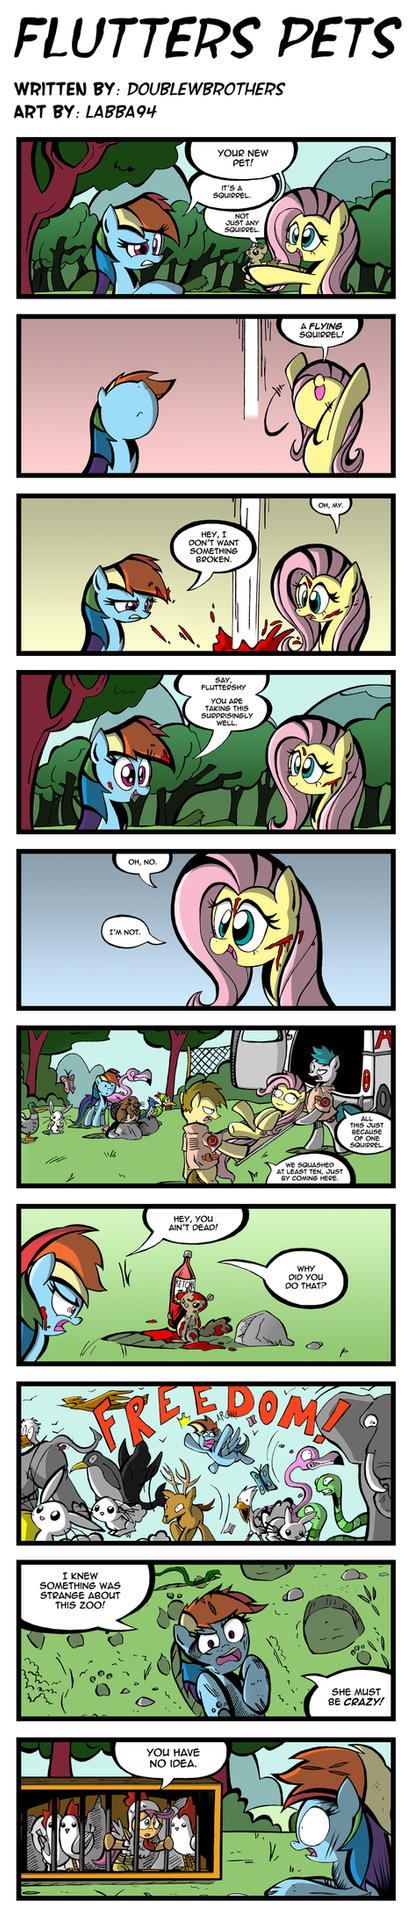 Flutters Pets by labba94